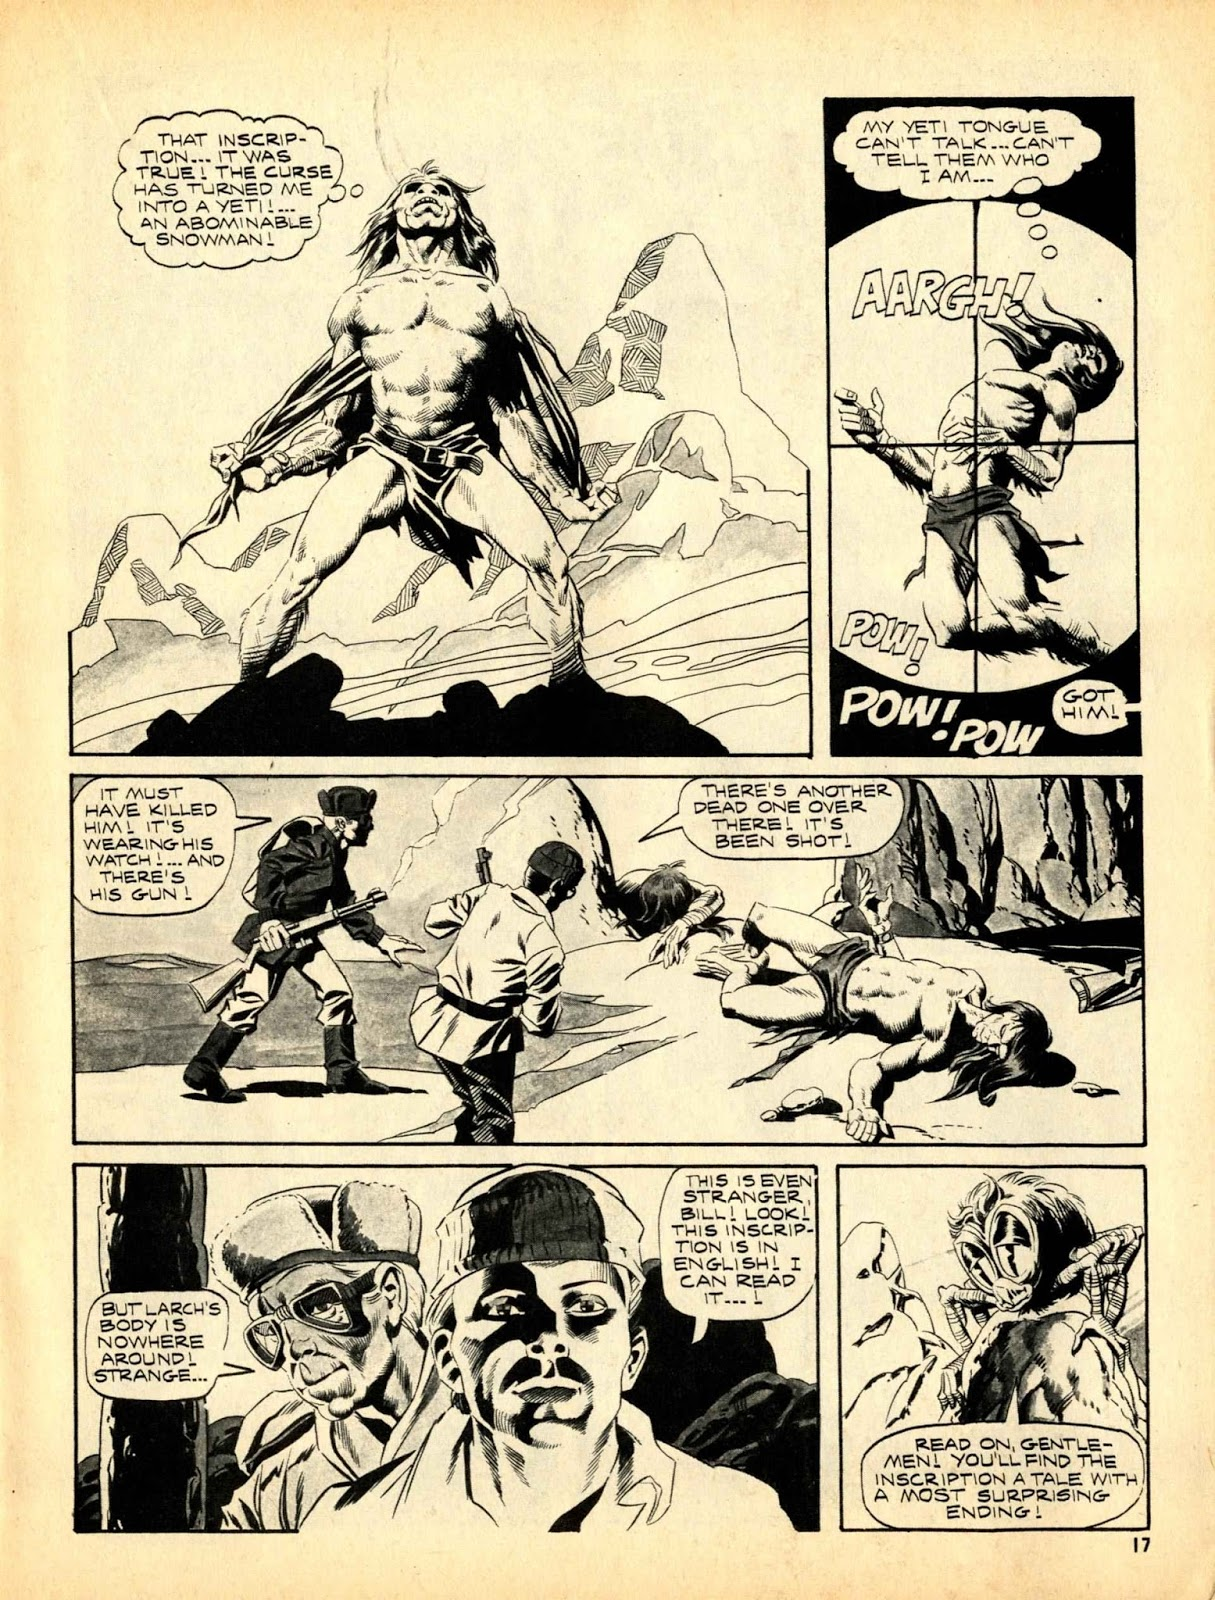 Web of Horror (1969) #3 pg17, written by Otto Binder with art from Ralph Reese.